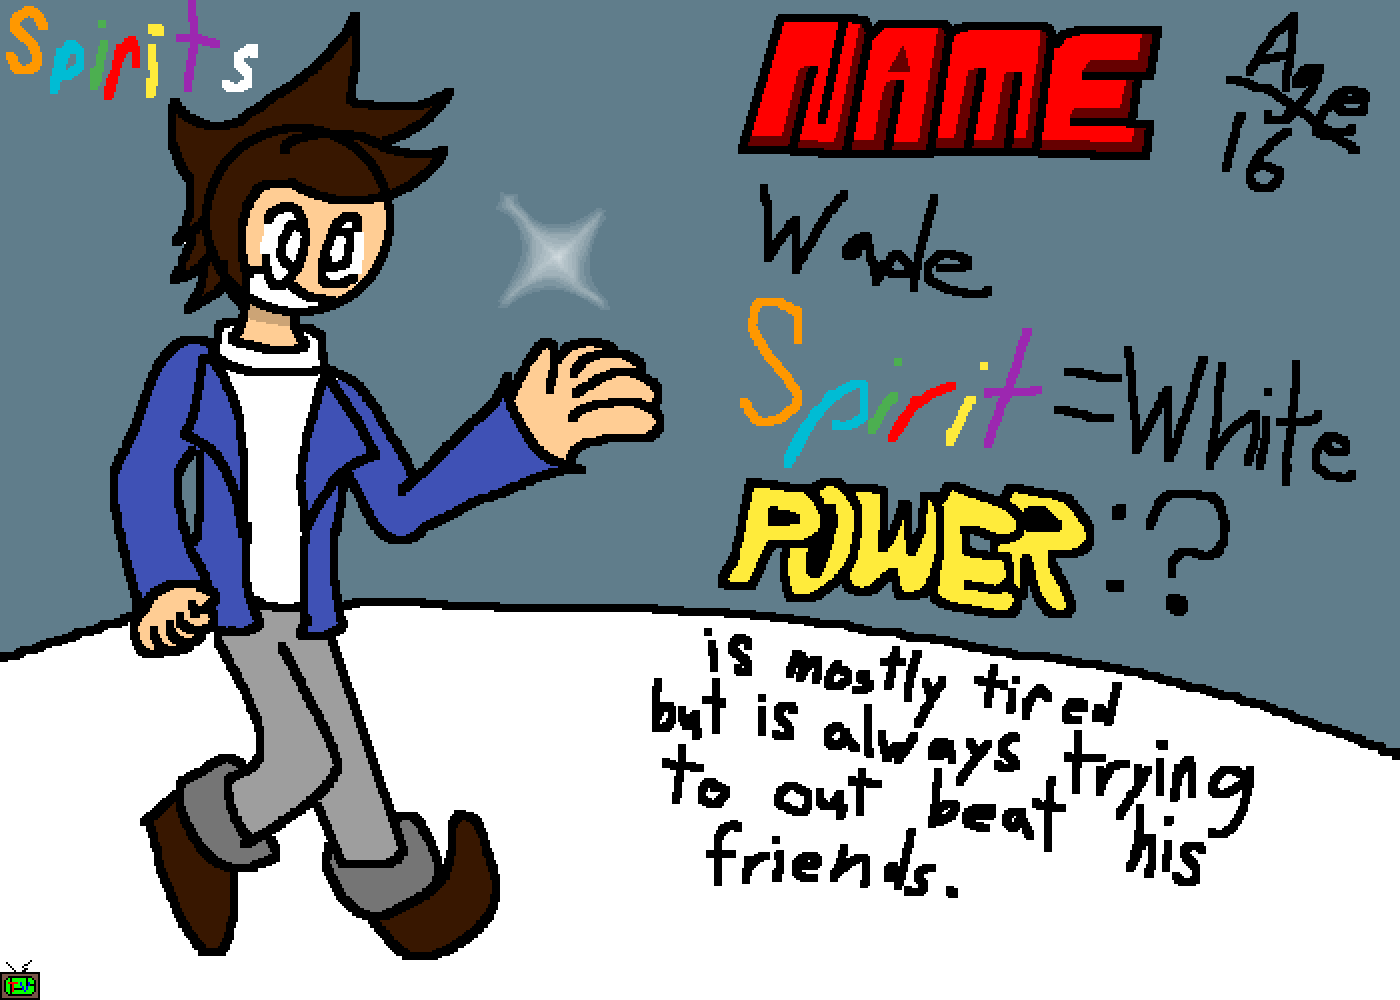 Spirits Wade Bio by Gaming04